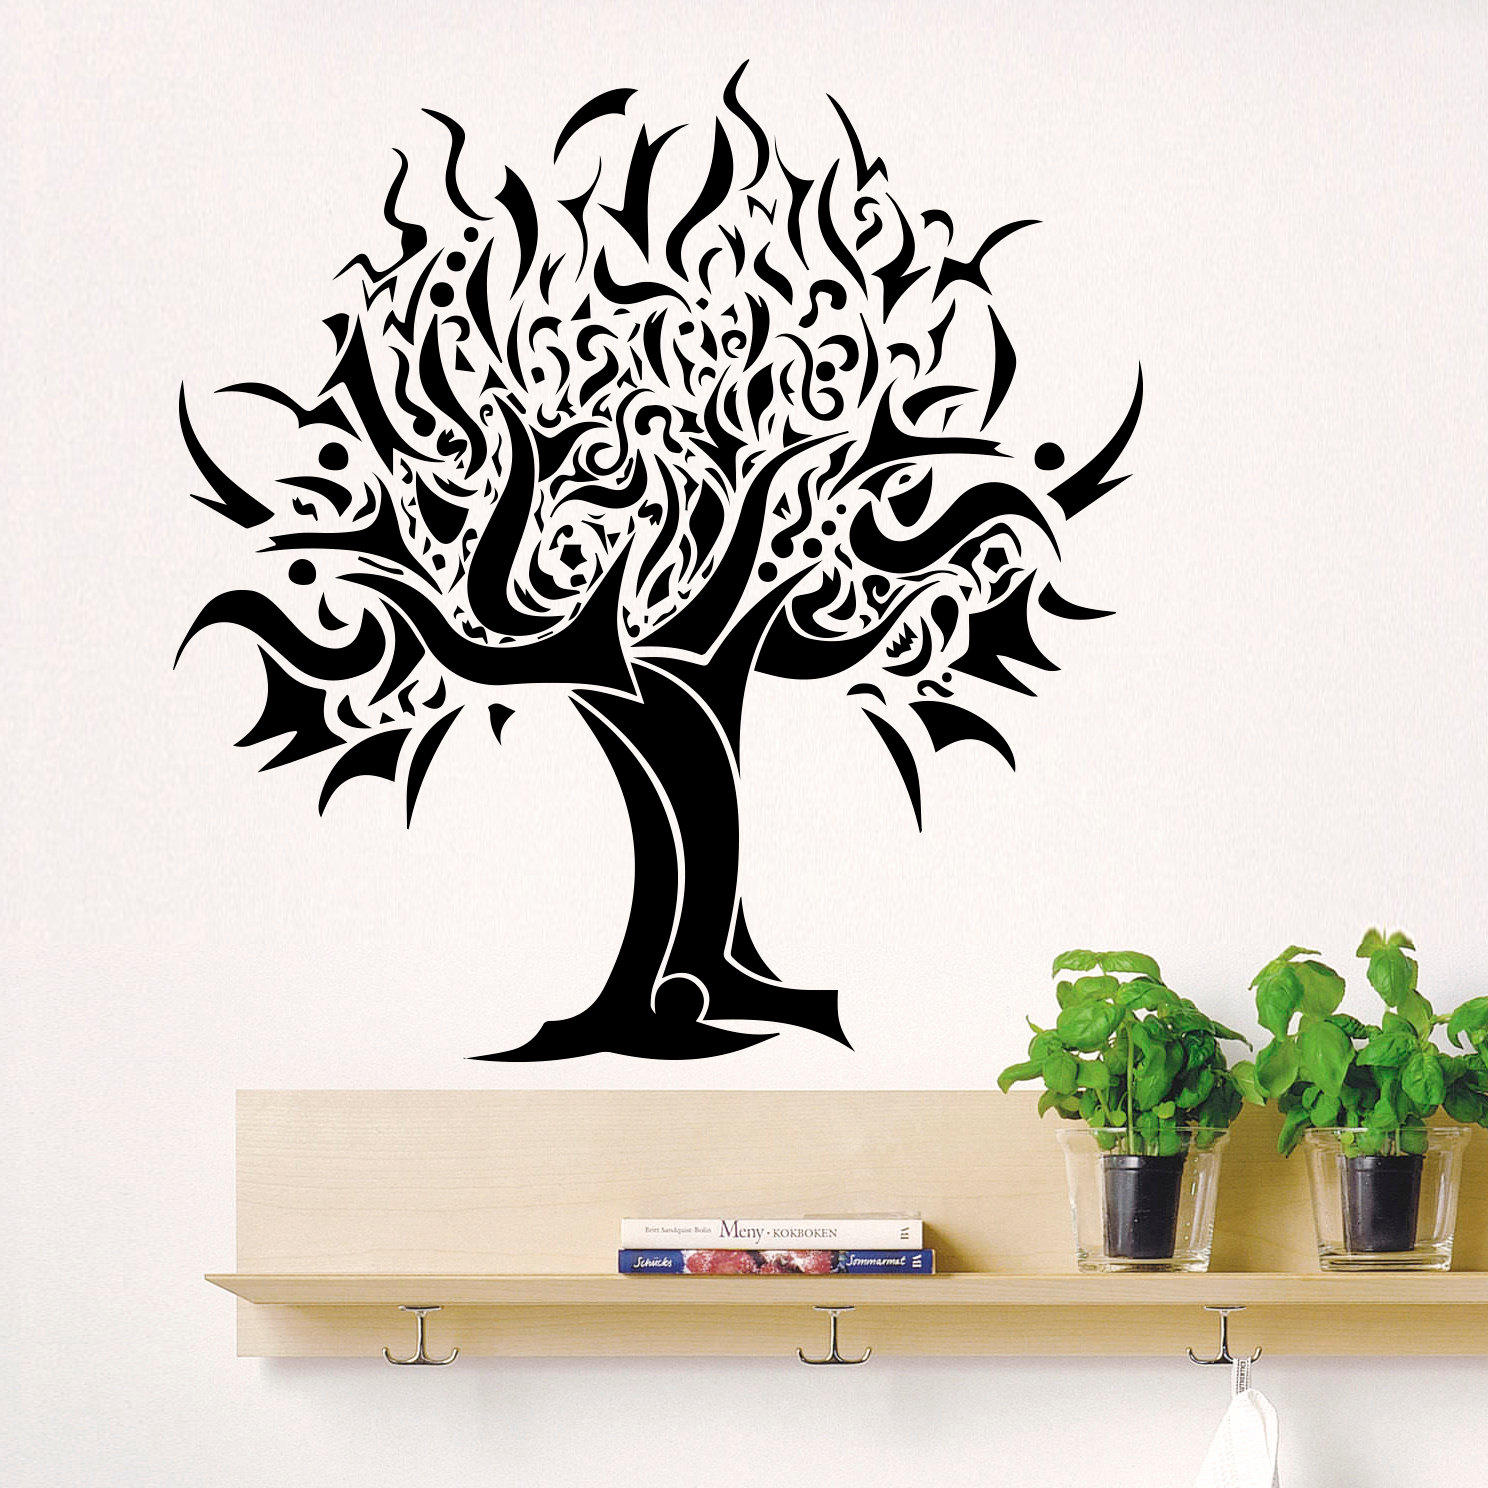 Bedroom Wall Art Trees Wall Decal Tree Silhouette Decals For From Decalsfromdavid On